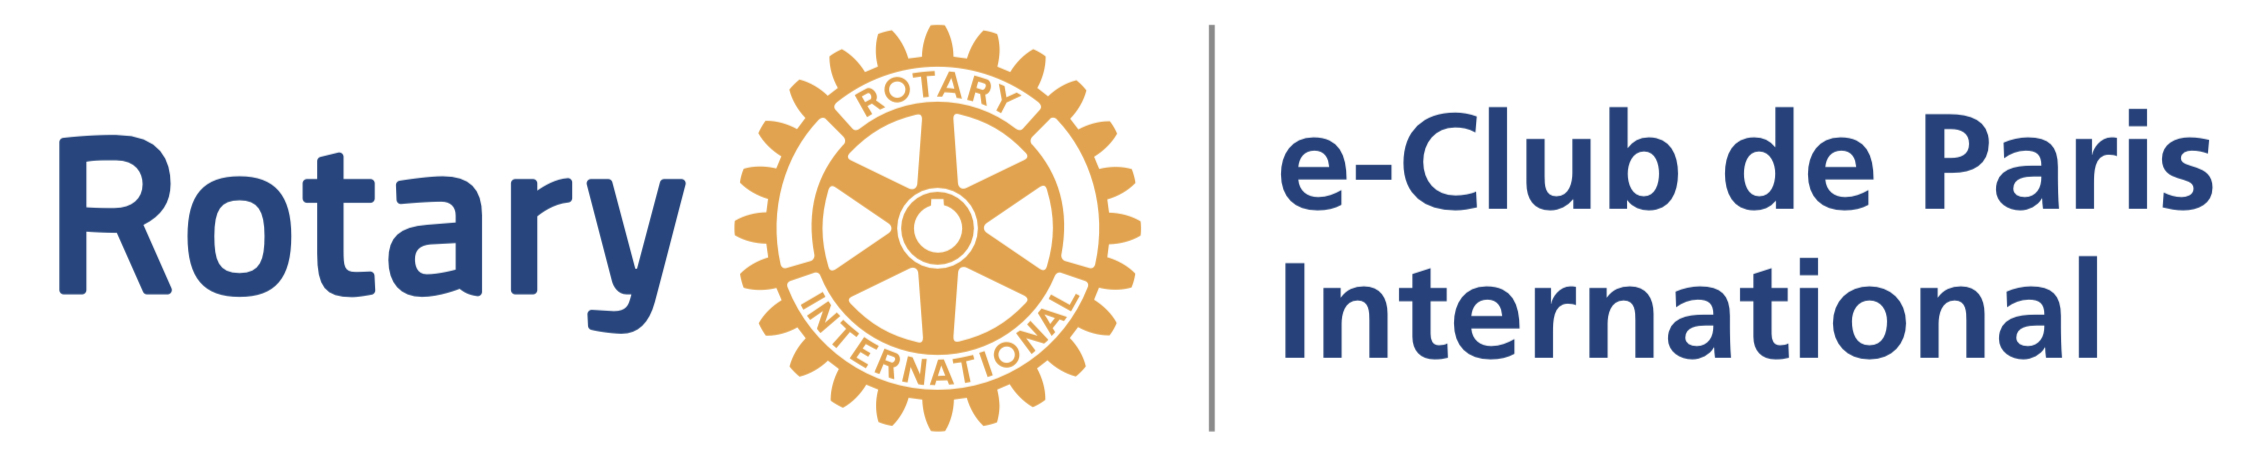 Rotary e-Club Paris International